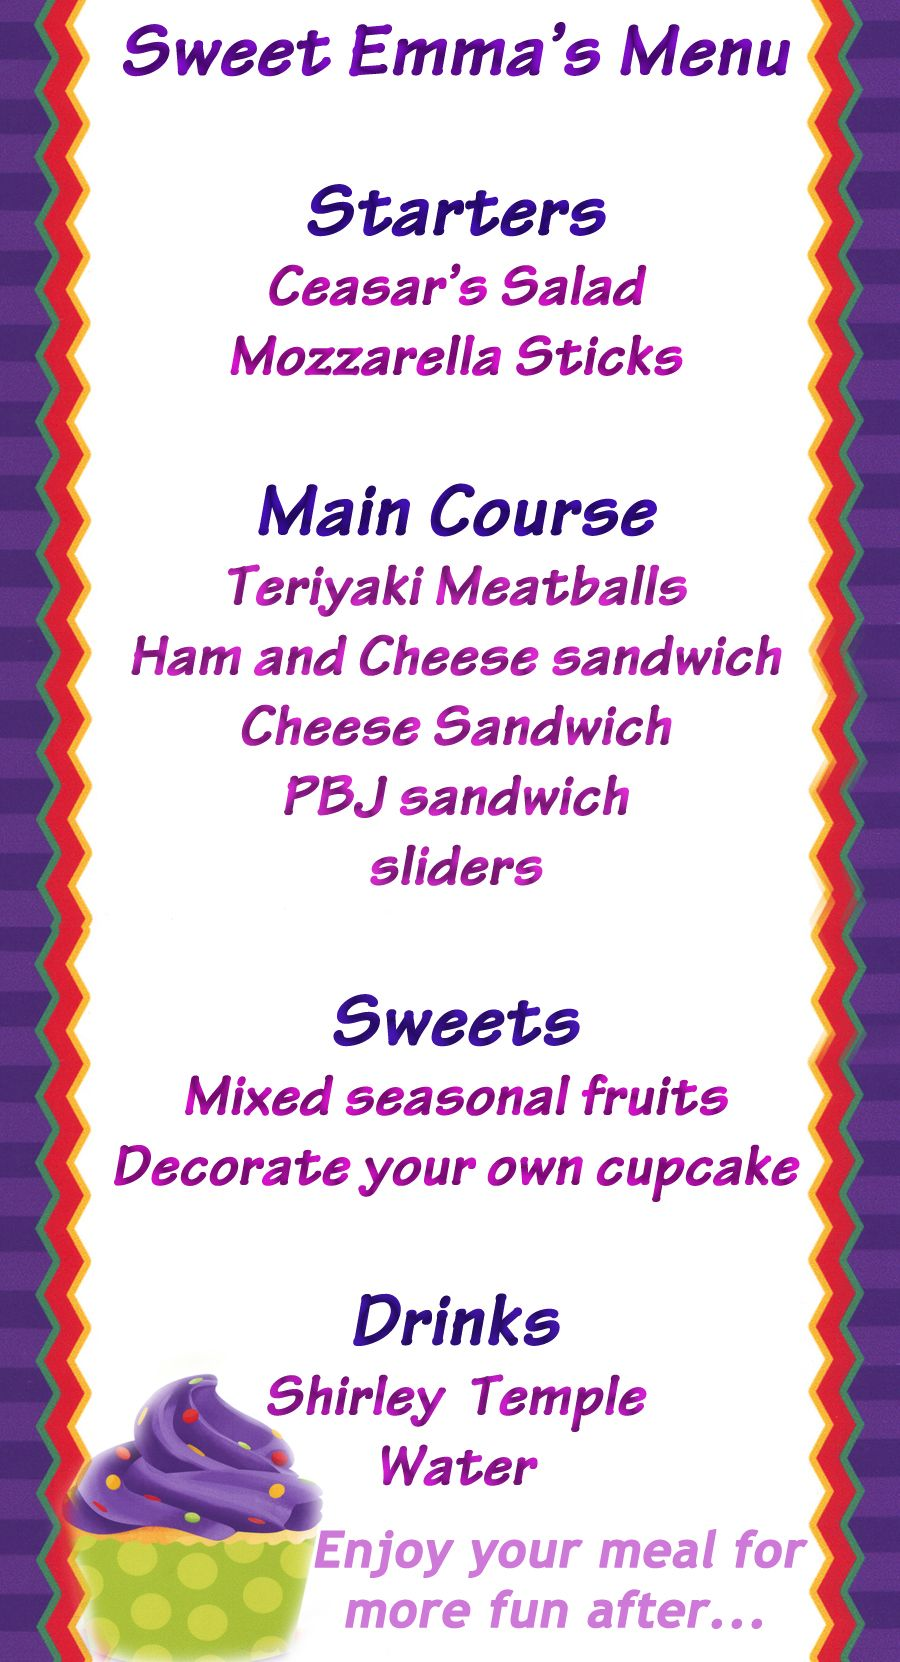 Sample Menu Card For EmmaS Party  PhotographyKids And My Style